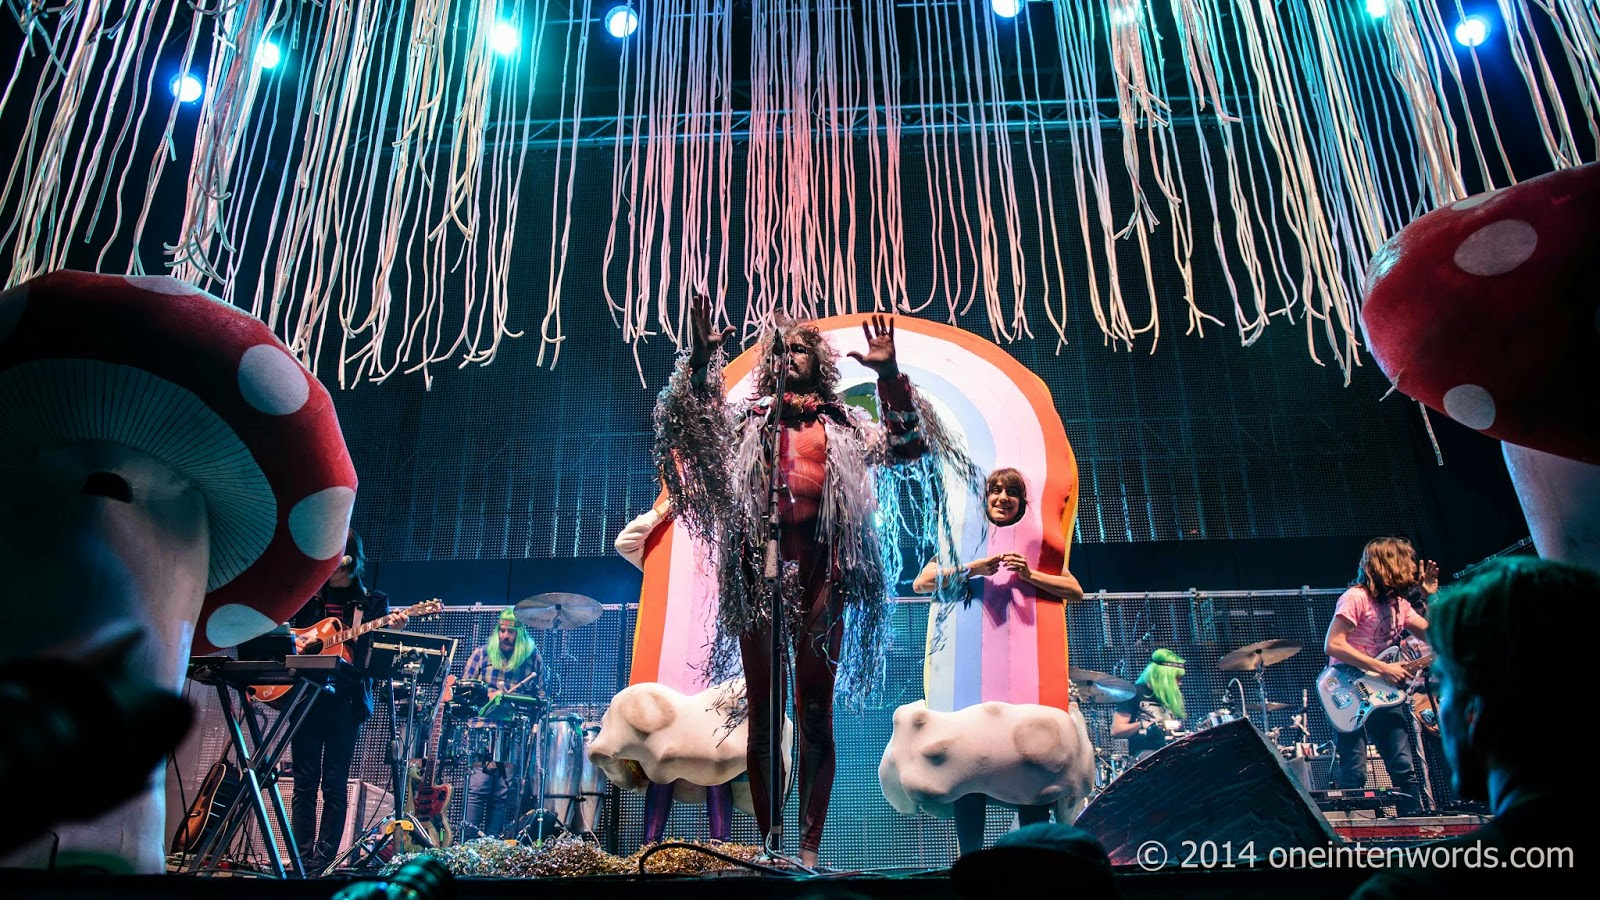 The Flaming Lips Toronto Riot Fest 2014 www.oneintenwords.com one in ten words toronto indie alternative music blog concert photography pictures